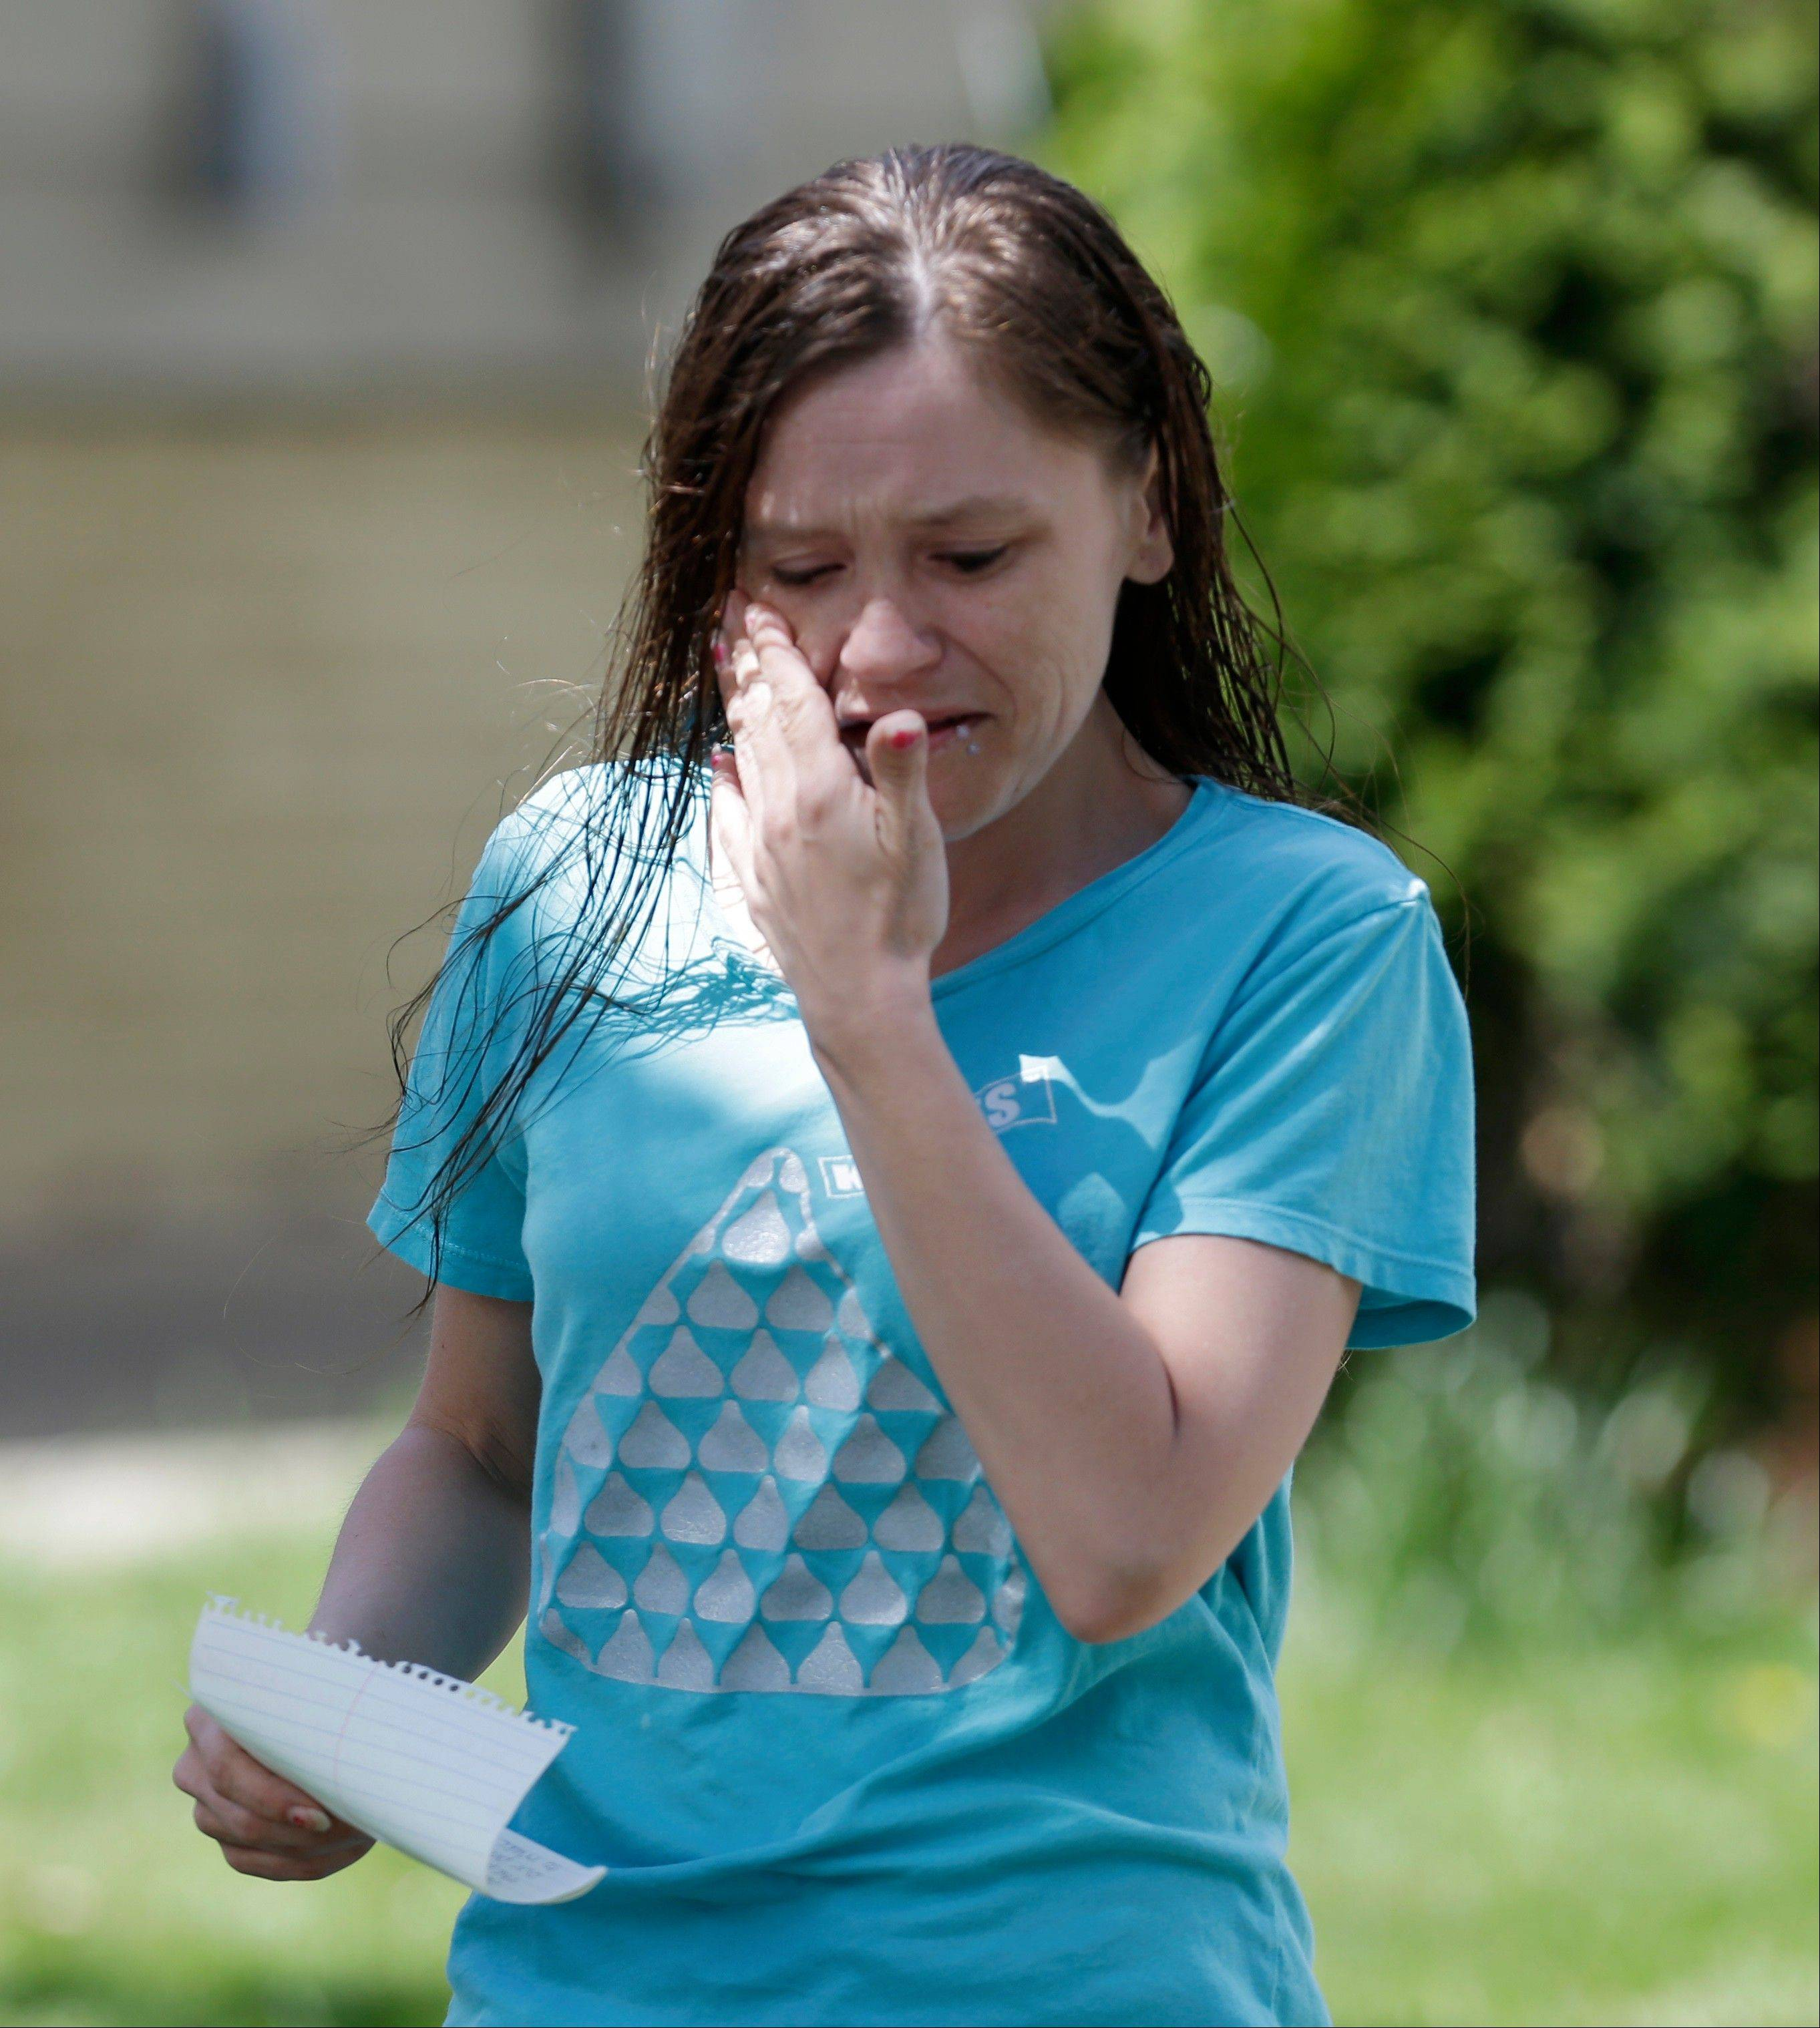 Beth Serrano, sister of Amanda Berry, wipes her eyes before speaking to the media after the arrival of Berry at Serrano's home Wednesday, May 8, 2013, in Cleveland. Berry, 27, Michelle Knight, 32, and DeJesus, about 23, had apparently been held captive in the house since their teens or early 20s, police said.